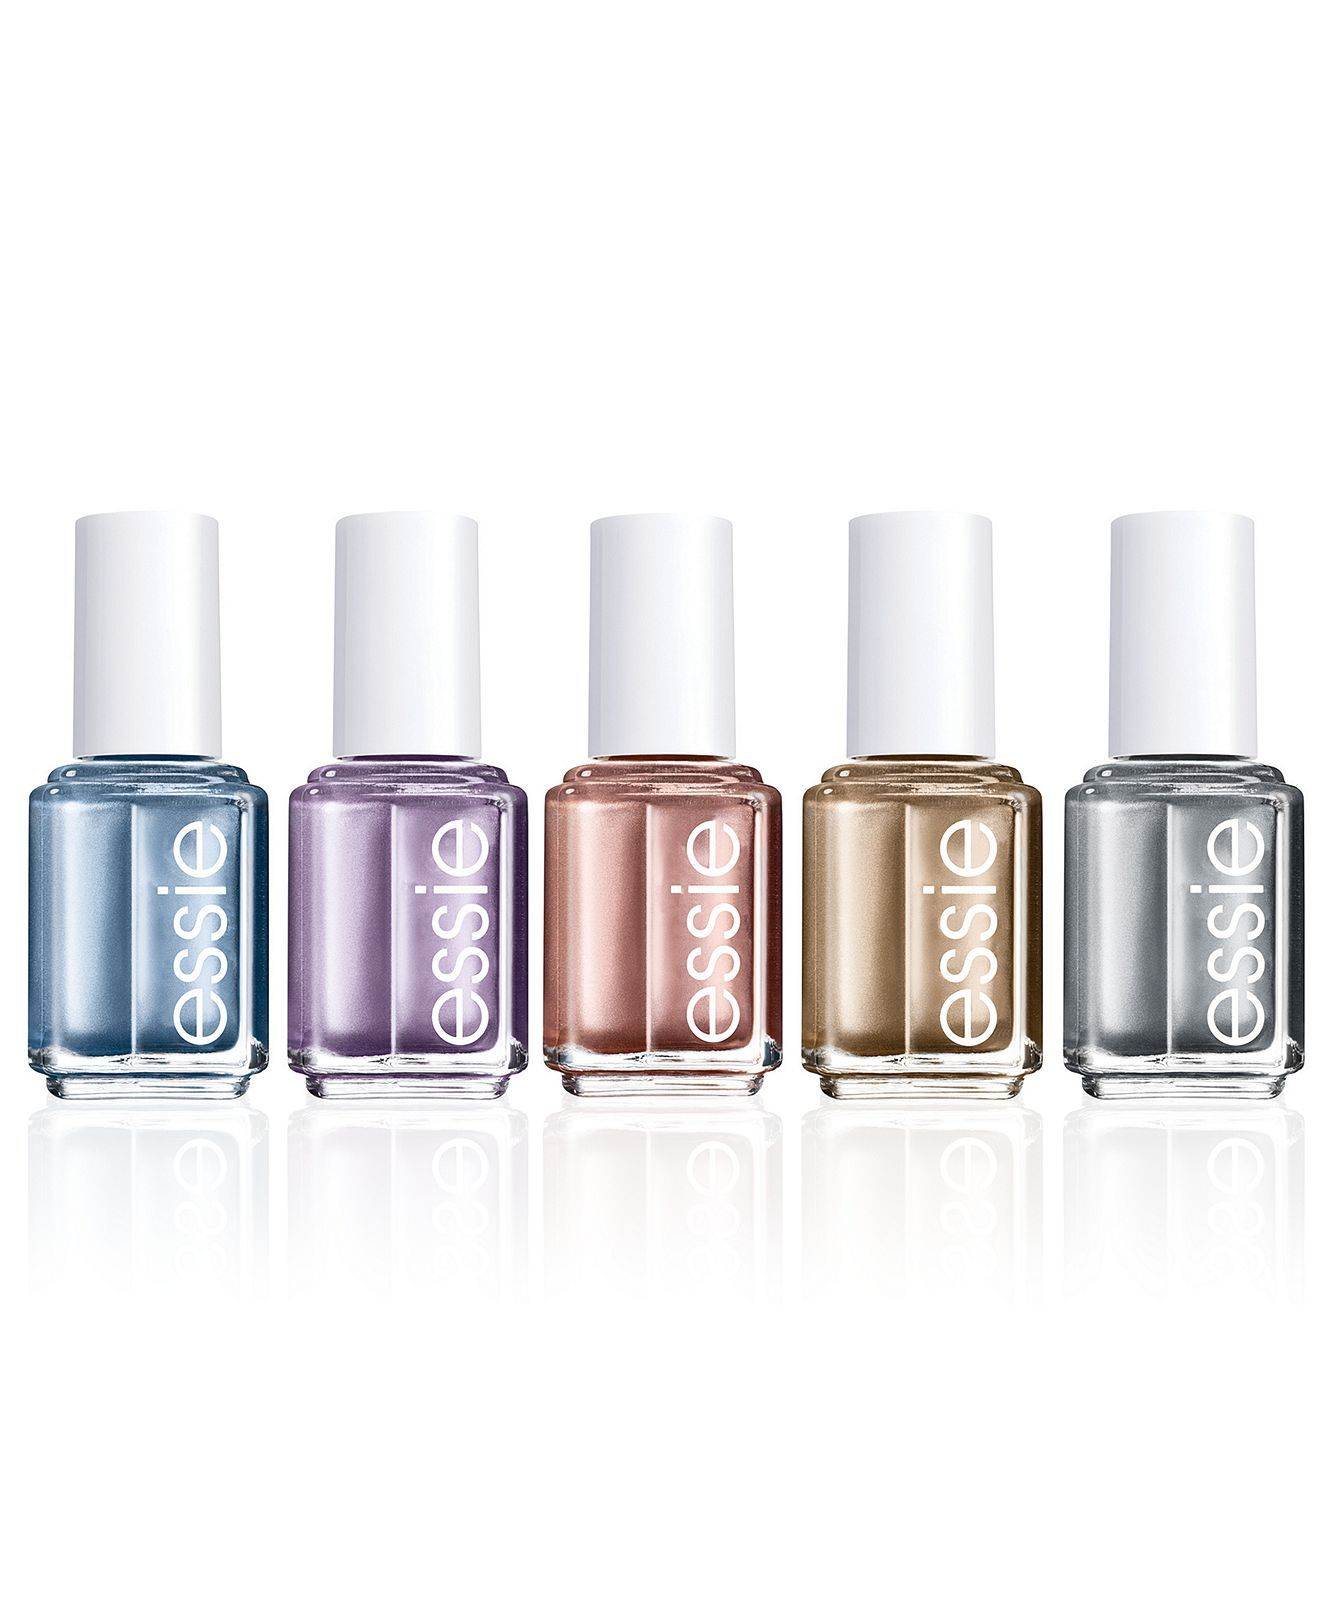 Essie mirror metallics collection | Manicuras y Estilo